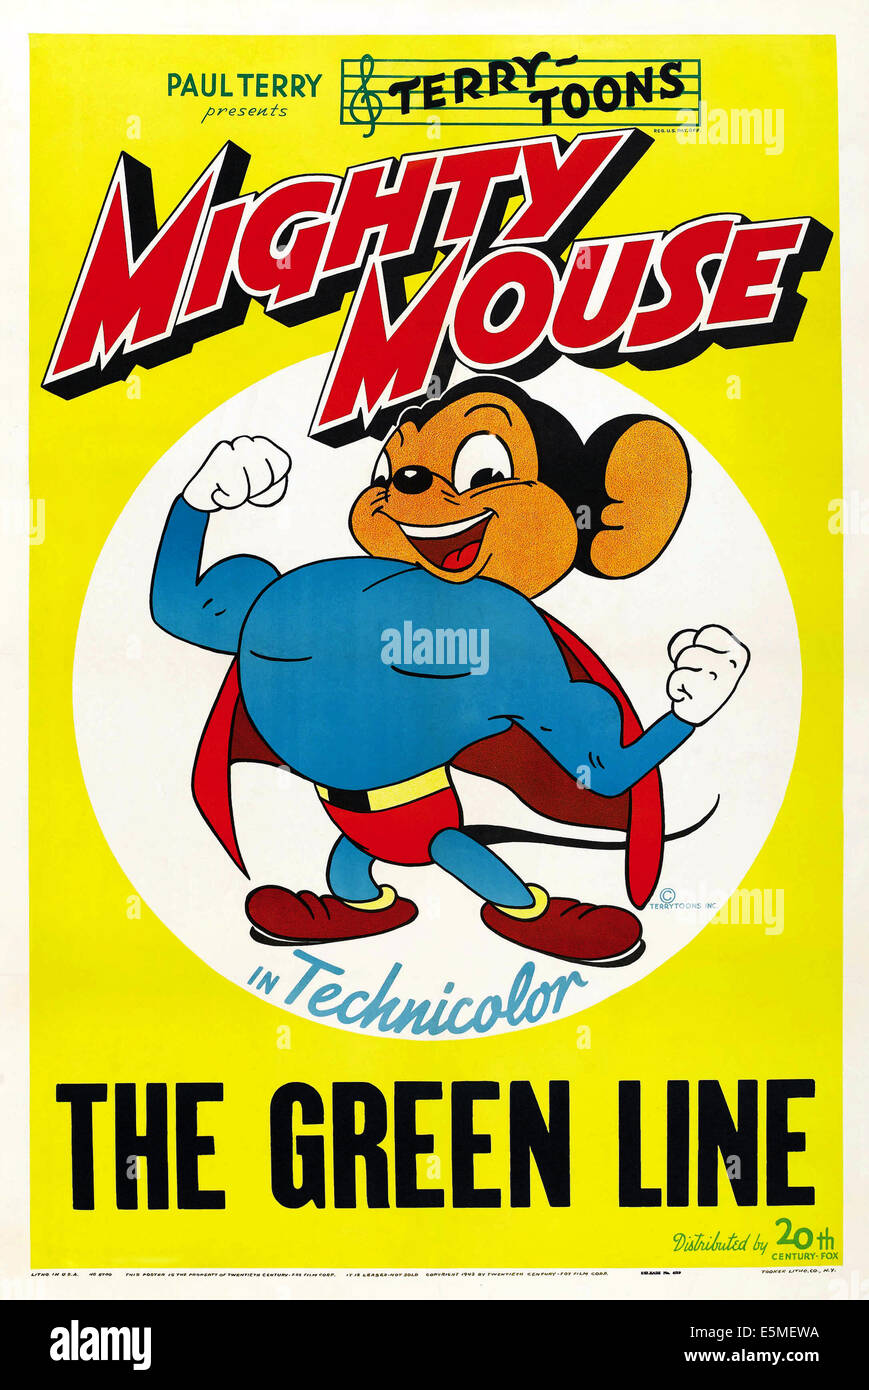 THE GREEN LINE, US poster art, Mighty Mouse, 1944 - Stock Image